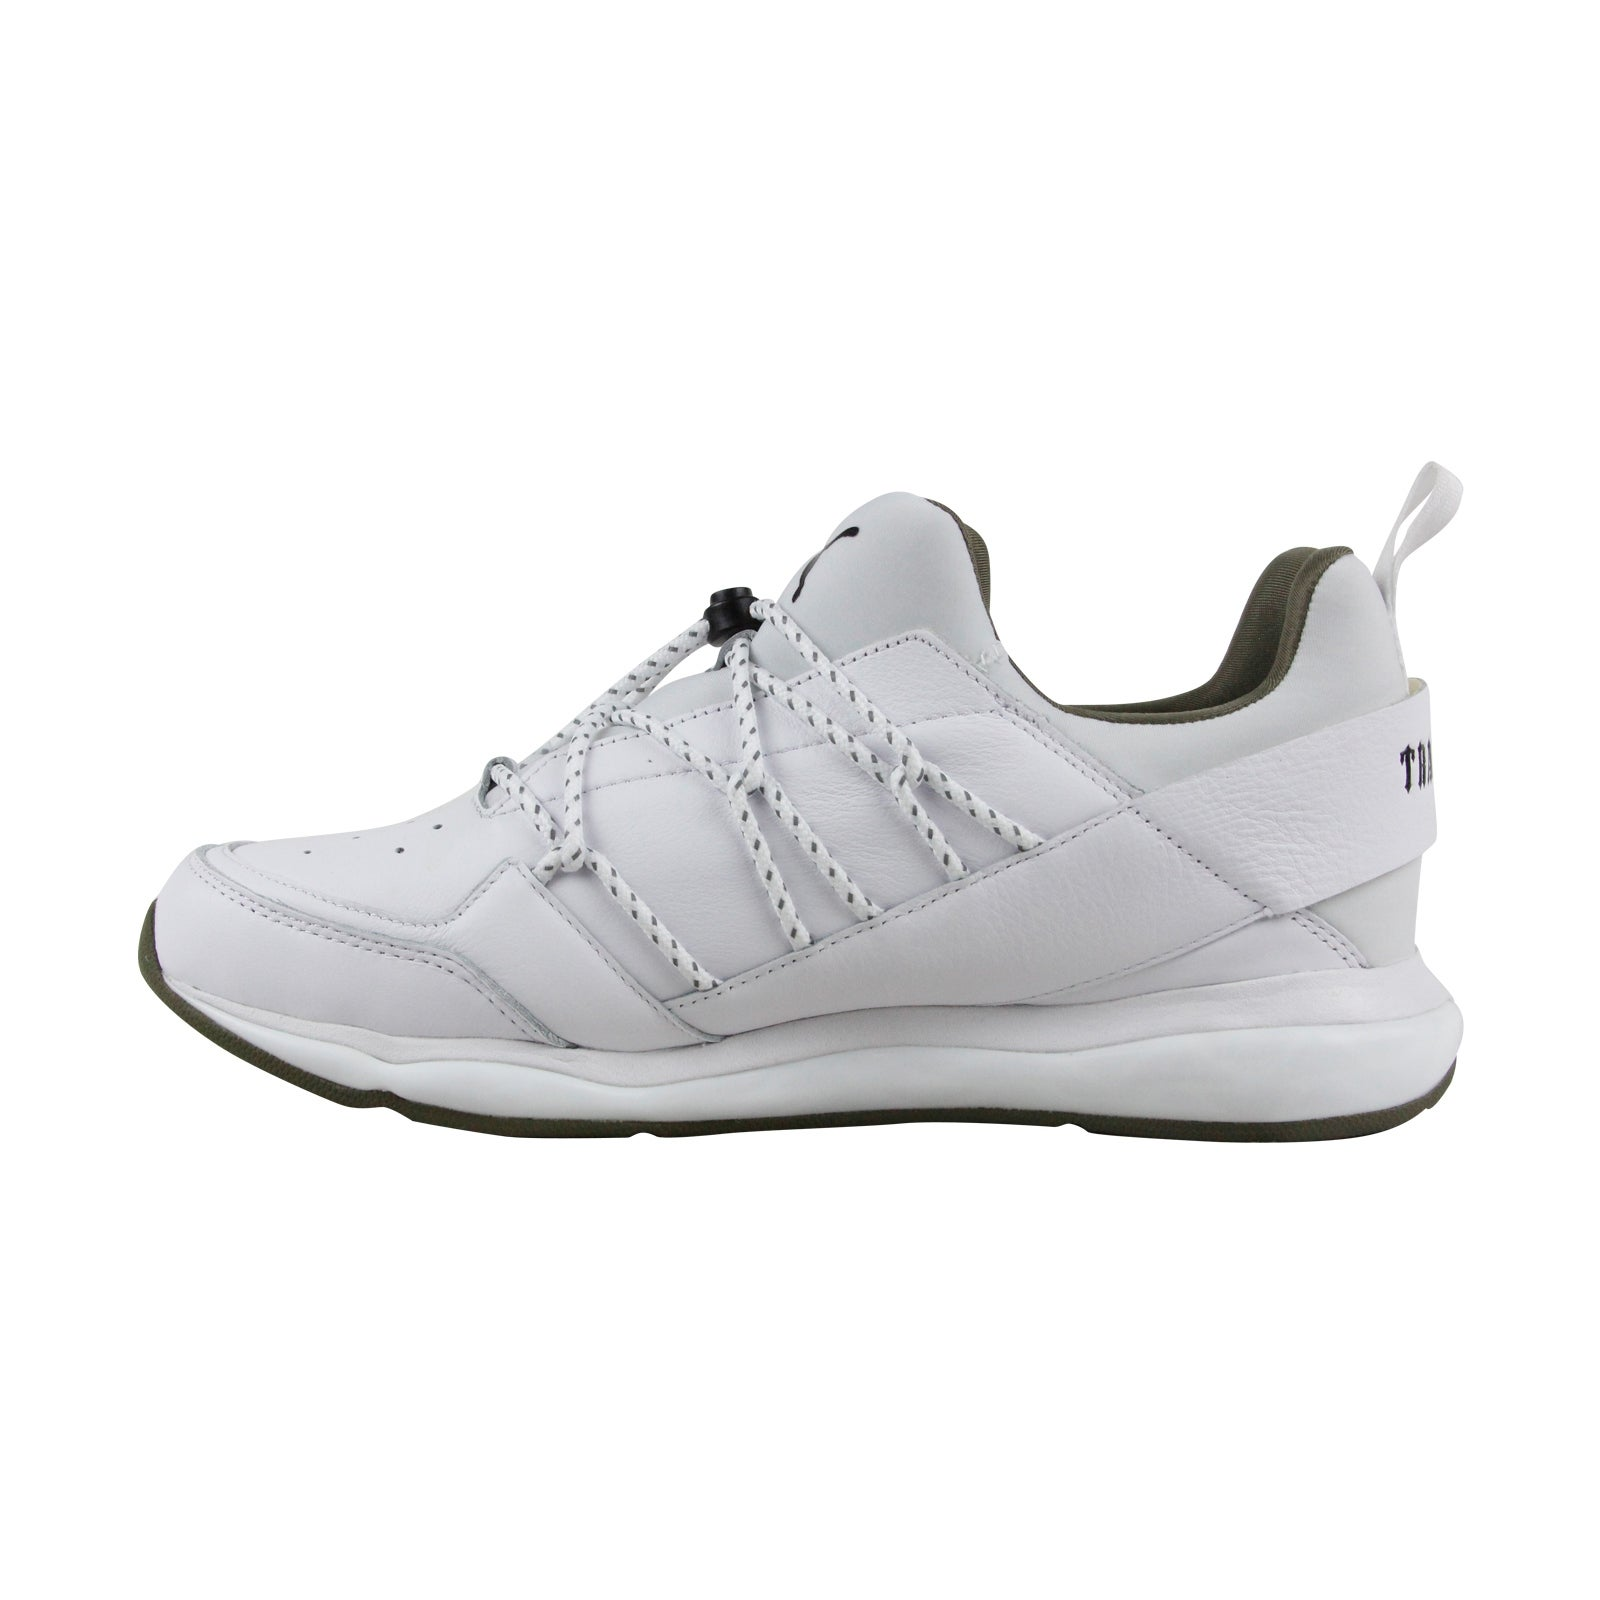 535141da379 Shop Puma X Trapstar Cell Bubble Mens White Leather Athletic Running Shoes  - Ships To Canada - Overstock.ca - 21729240